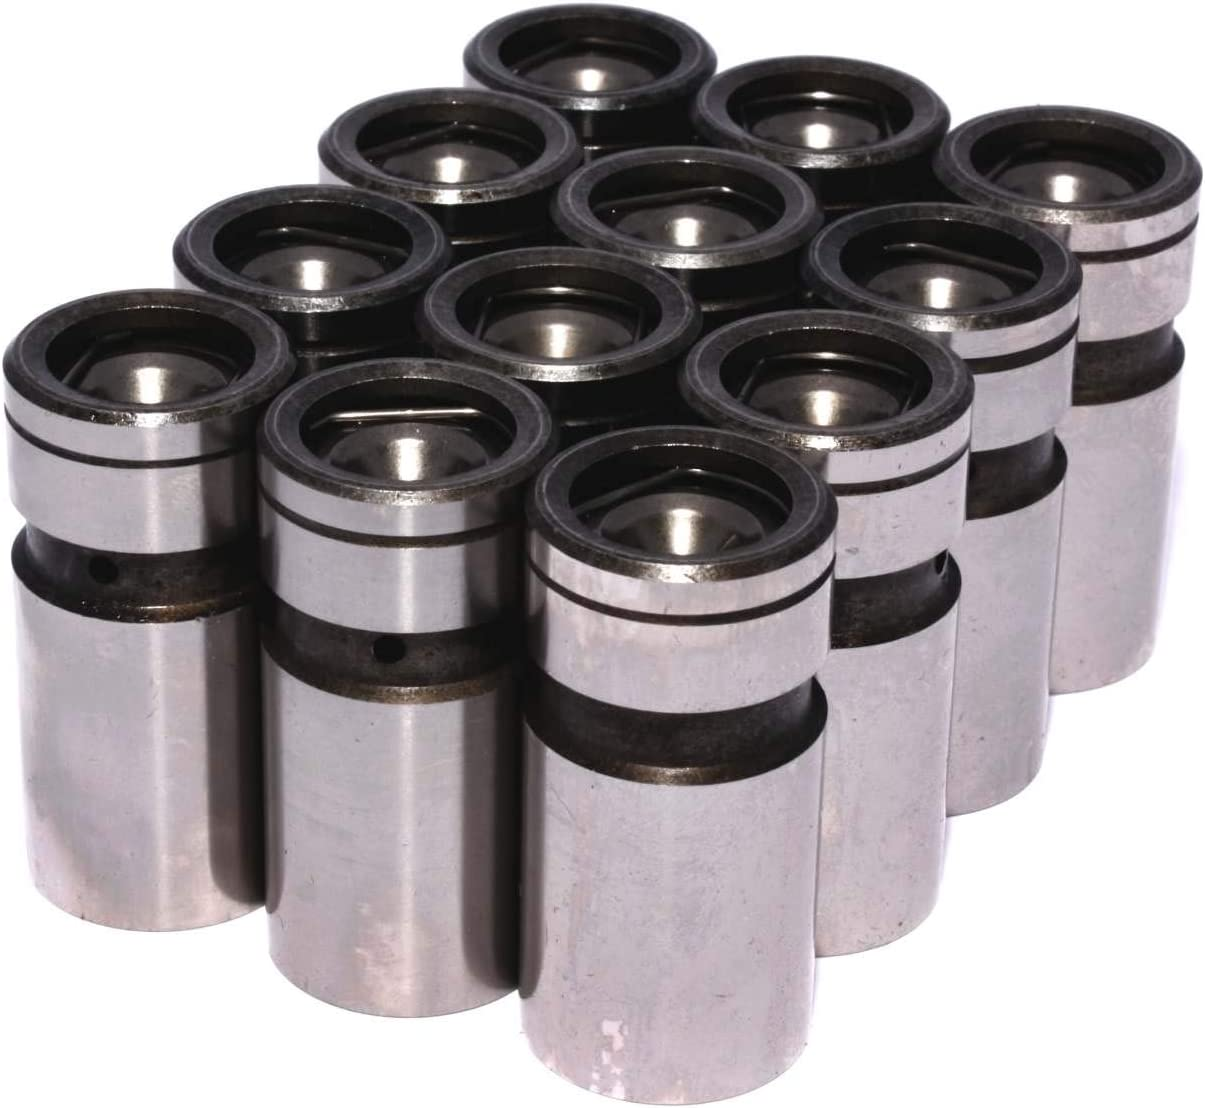 Competition Cams 82212 Lifter Set of 12